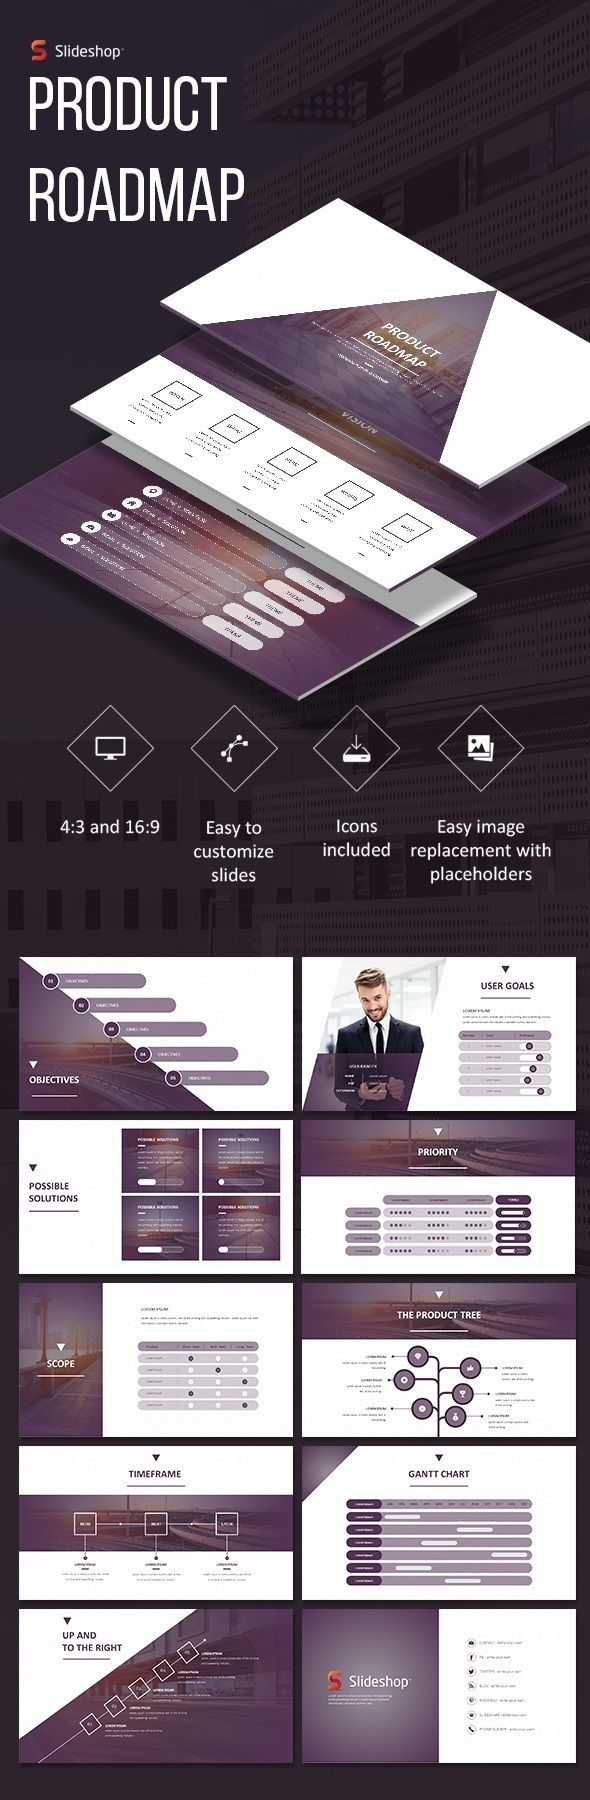 Product Roadmap  Presentation Templates Template And Keynote Design